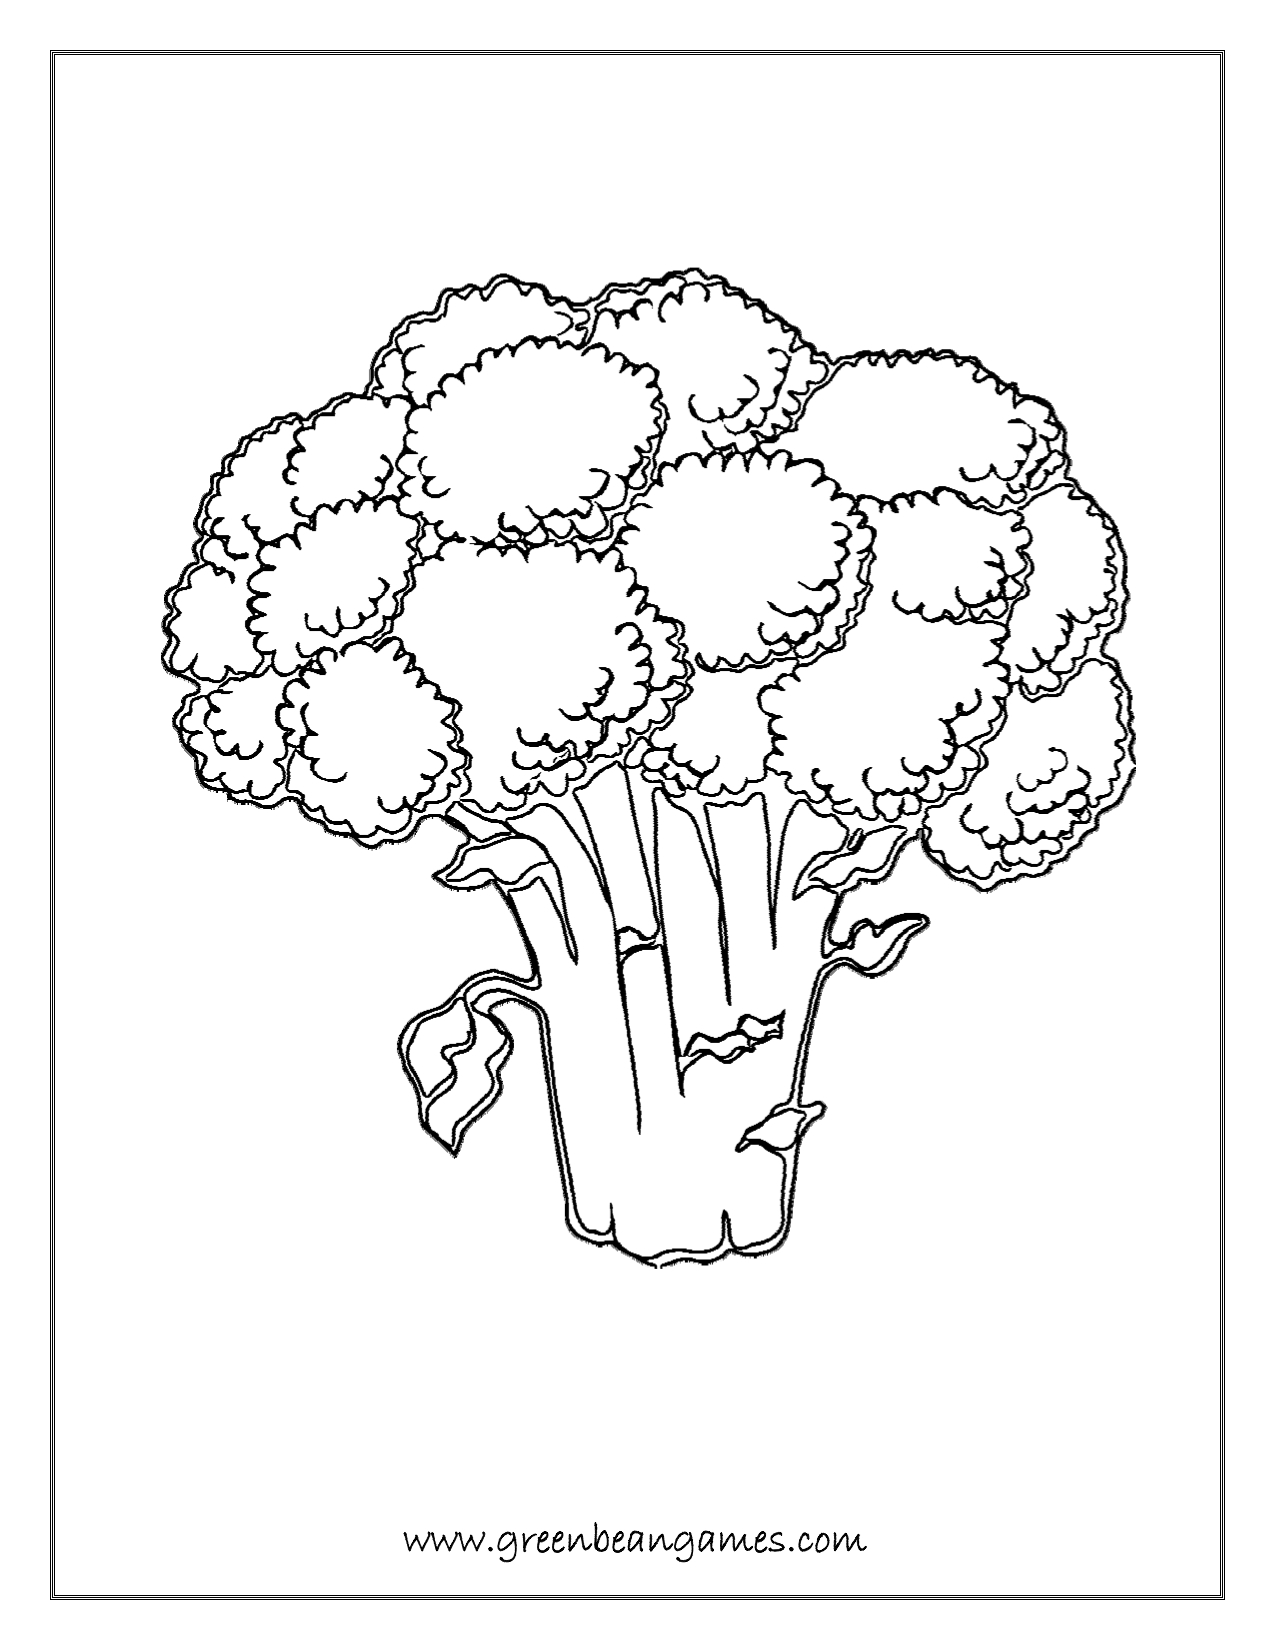 Broccoli Coloring Page At Getcolorings